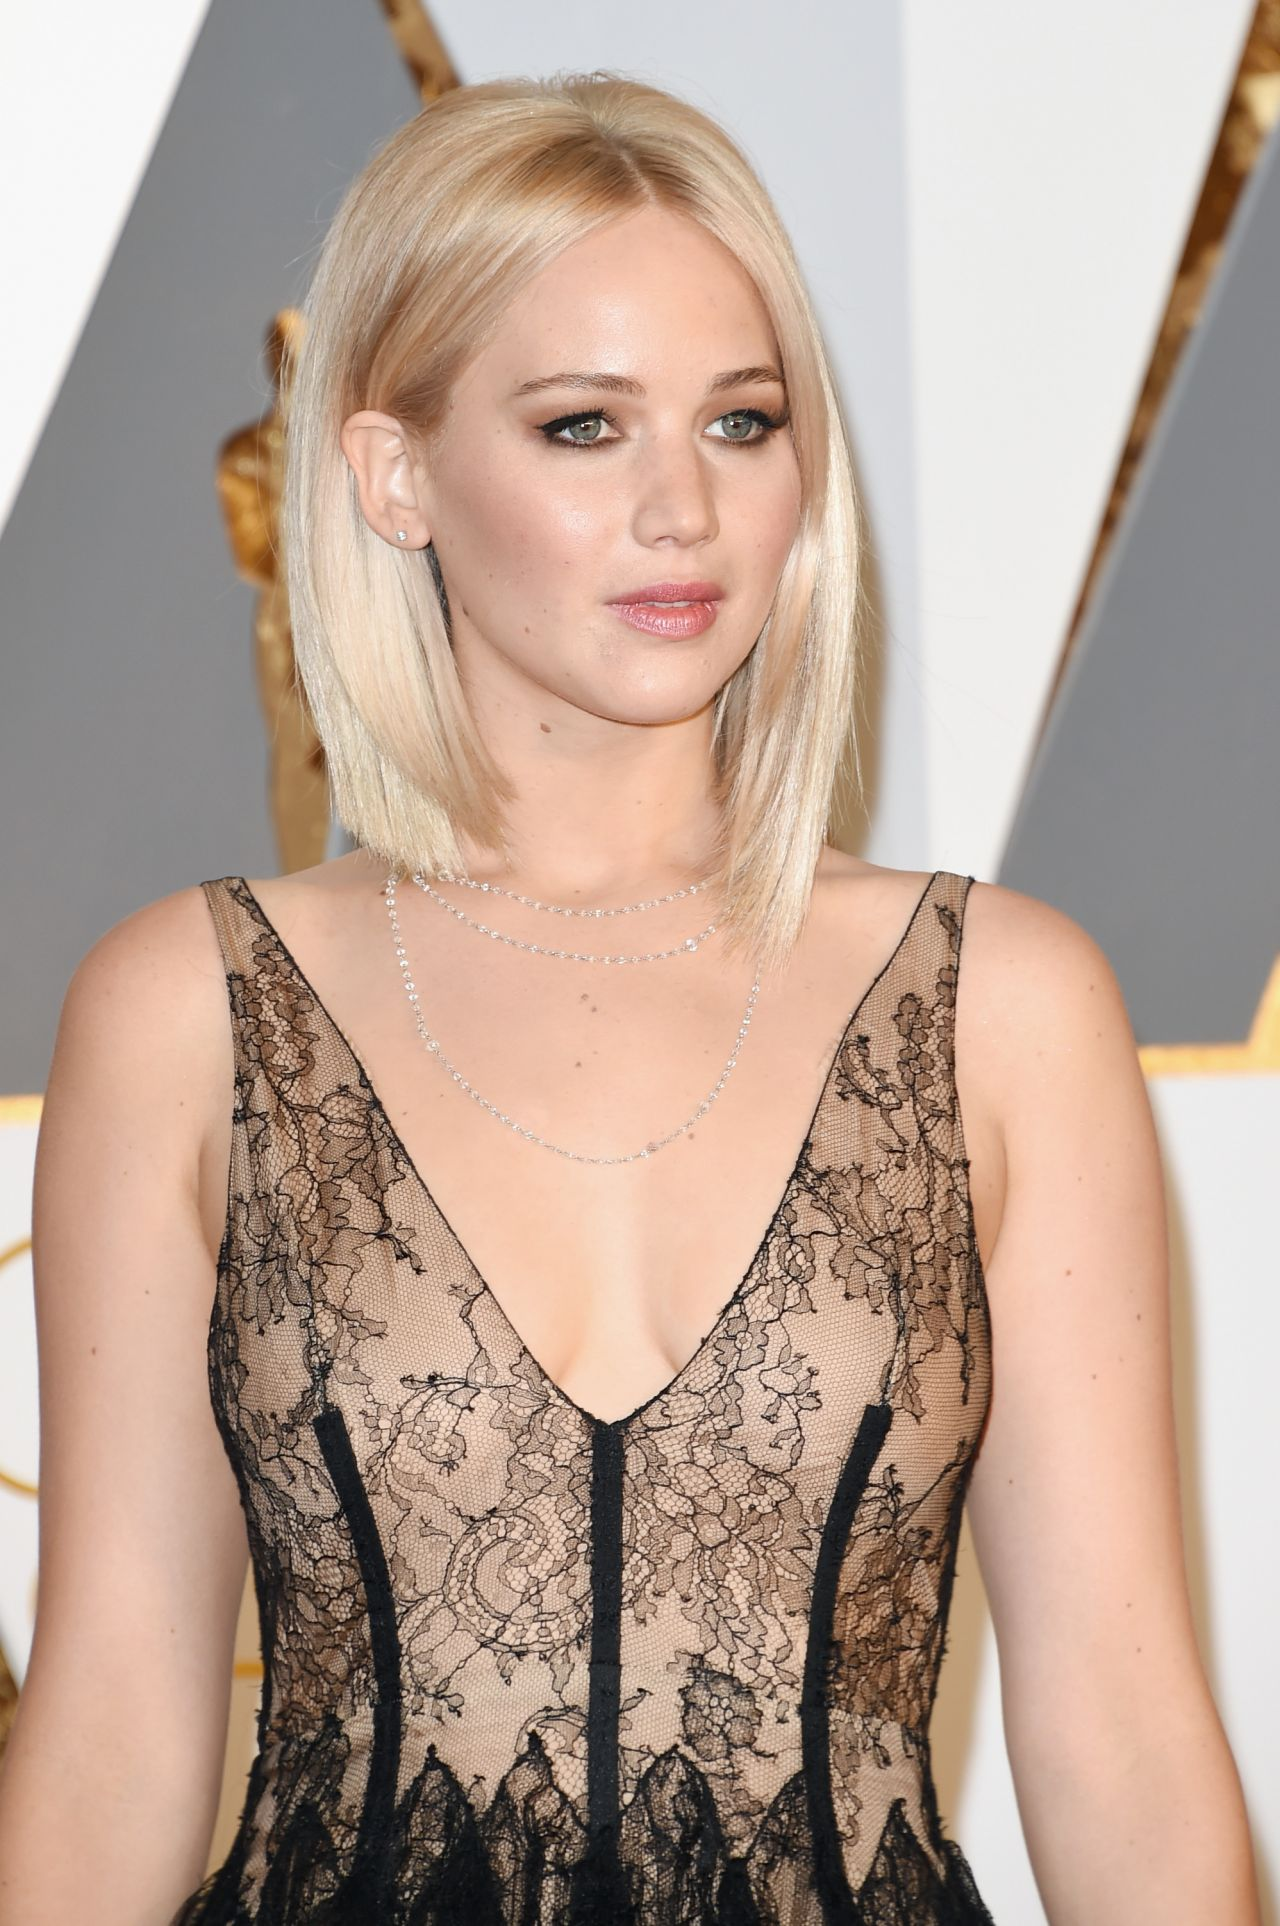 jennifer-lawrence-oscars-2016-in-hollywood-ca-2-28-2016-1